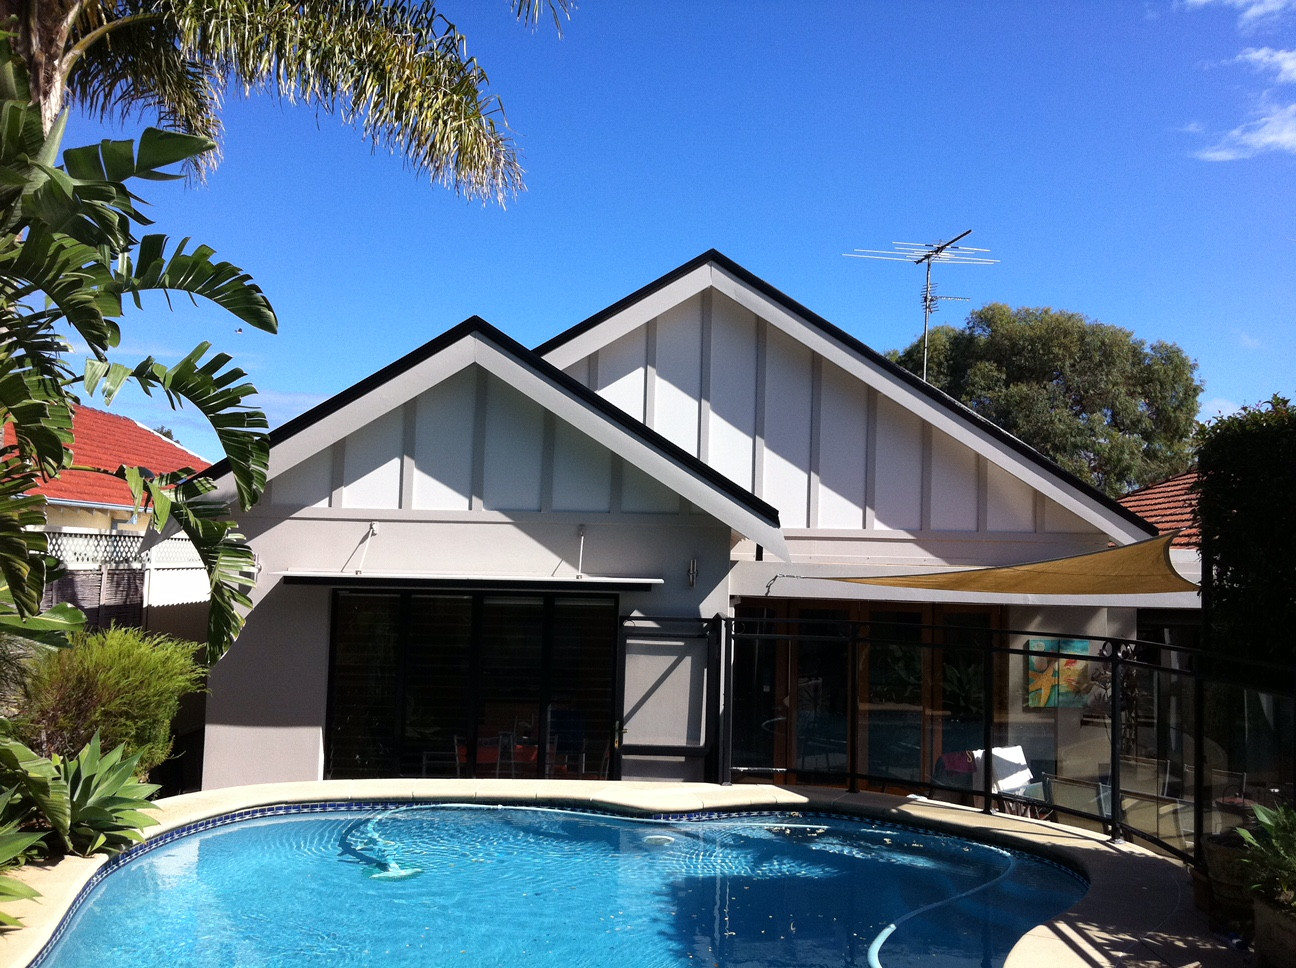 Californian Bungalow, Maroubra